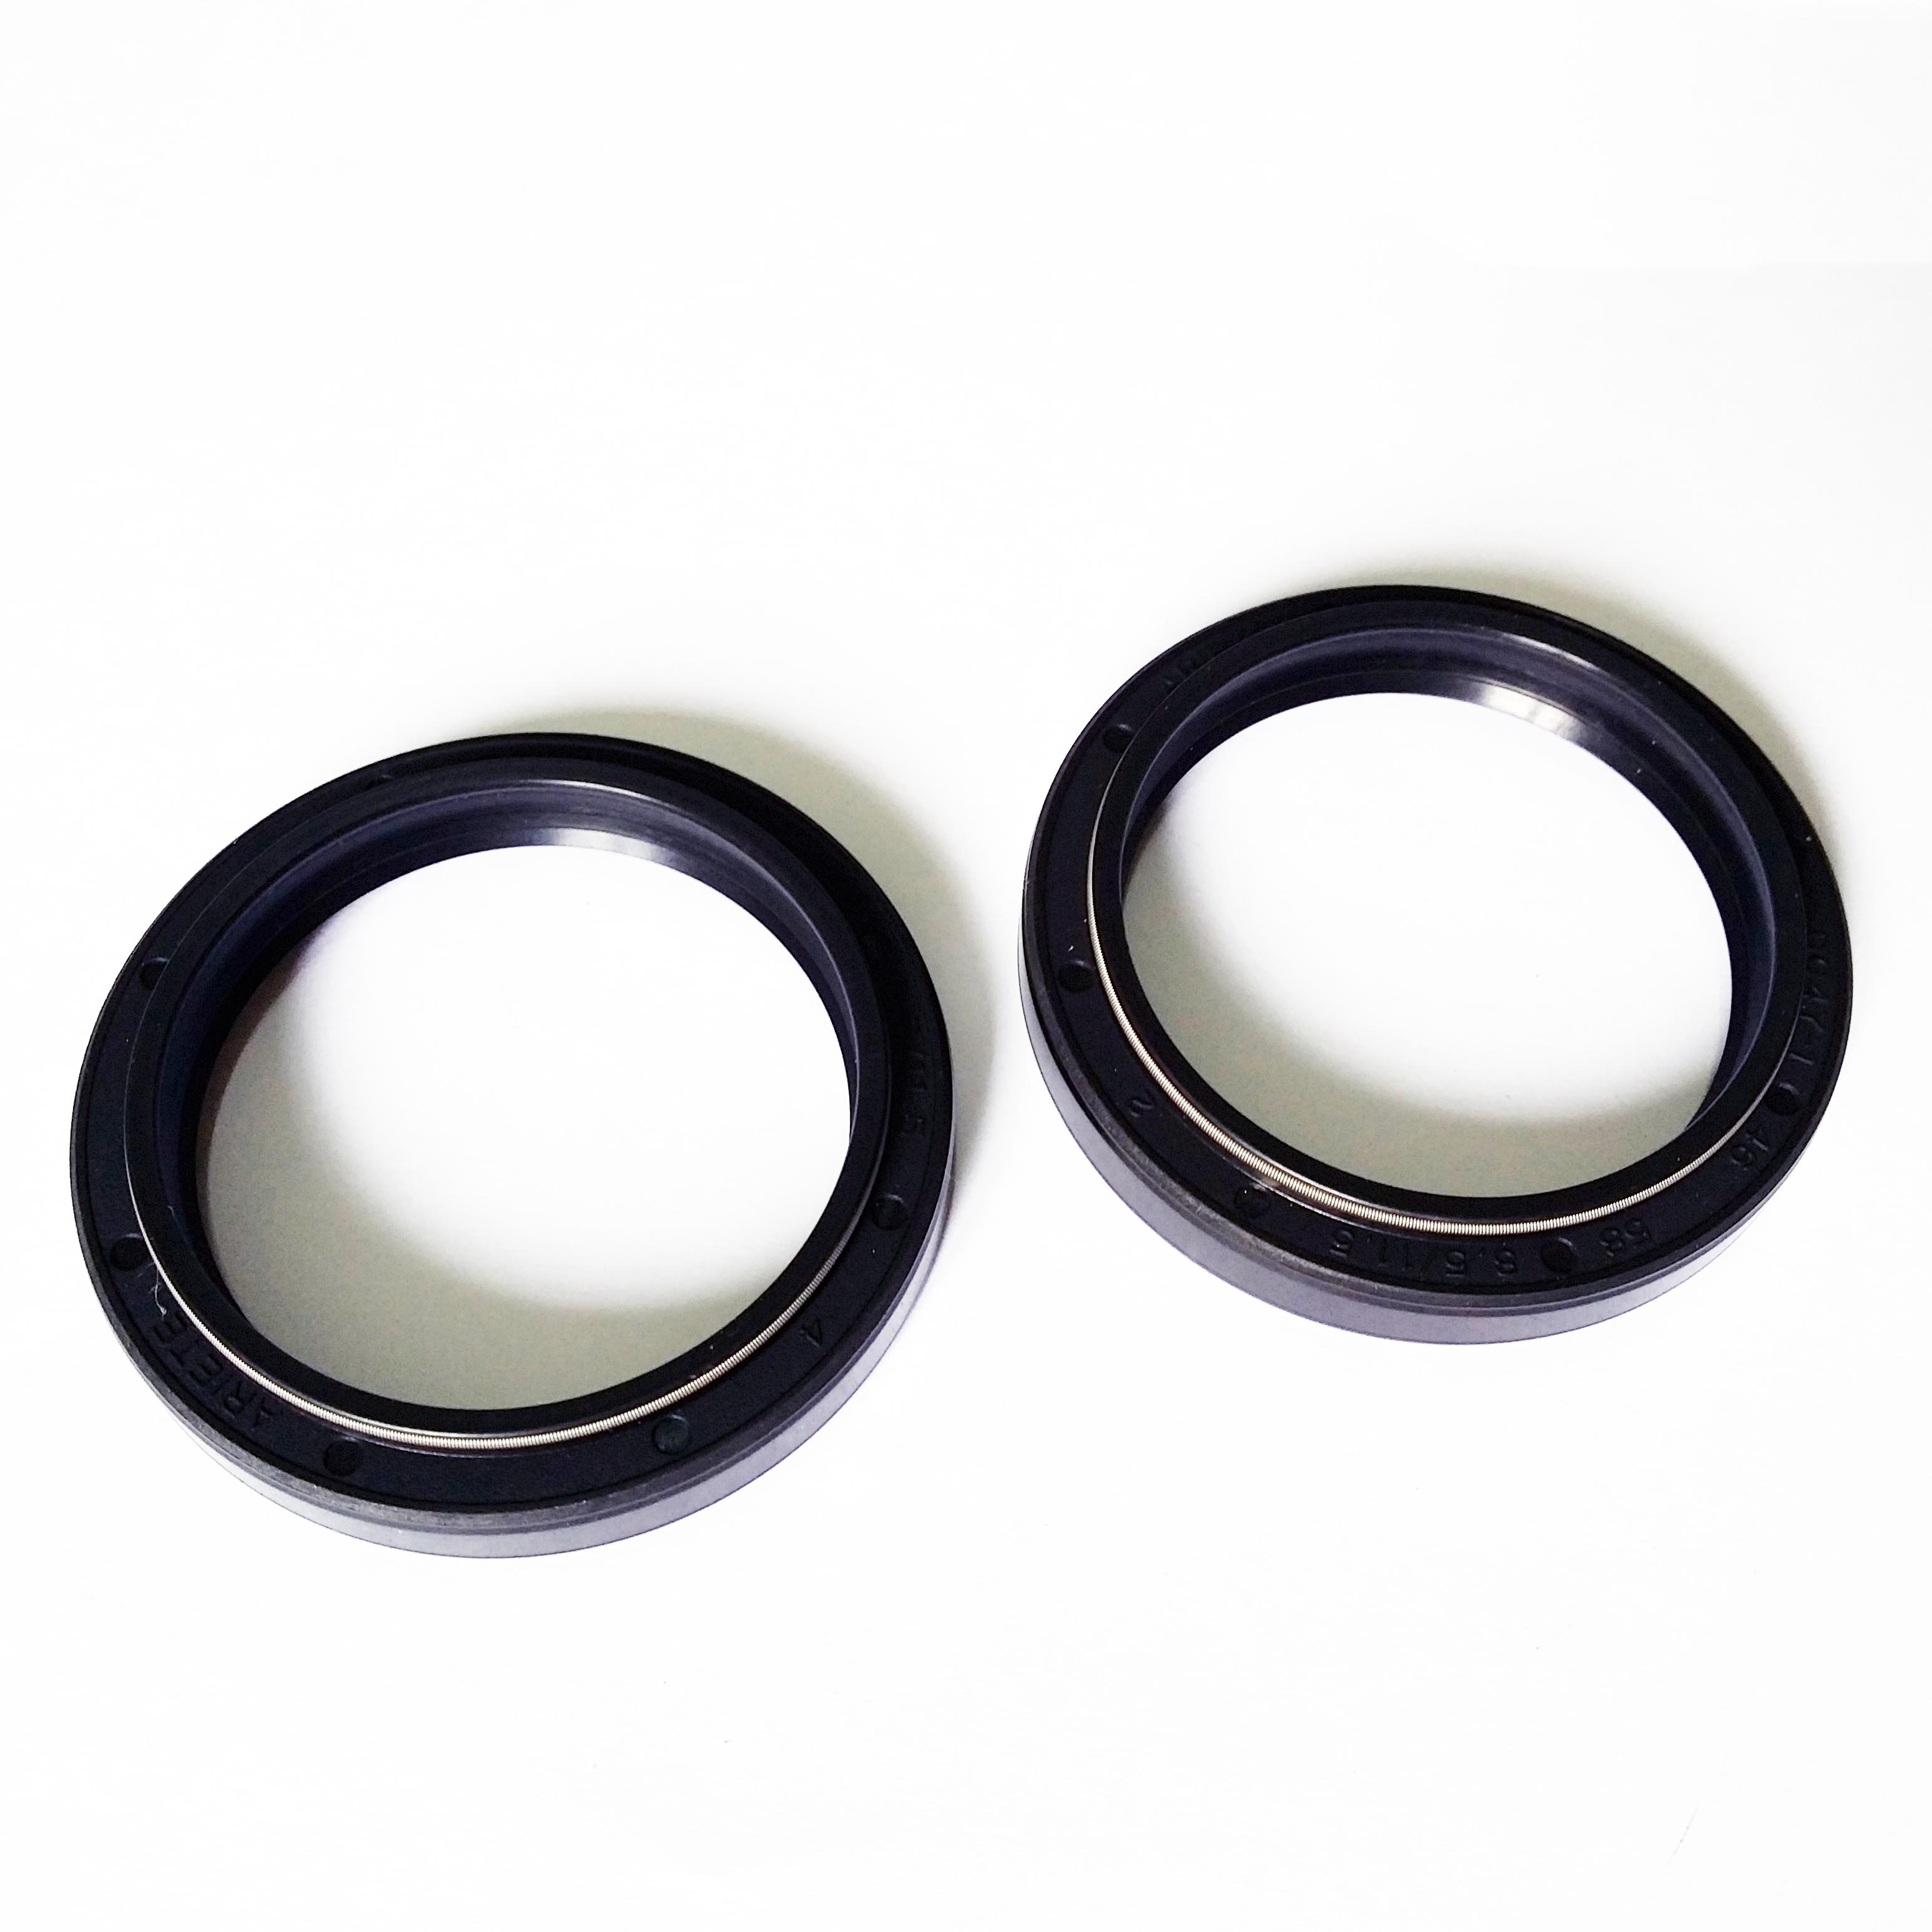 K-Tech Honda CRF250 2004-2009 NOK Front Fork Oil Seals 47x58x10mm